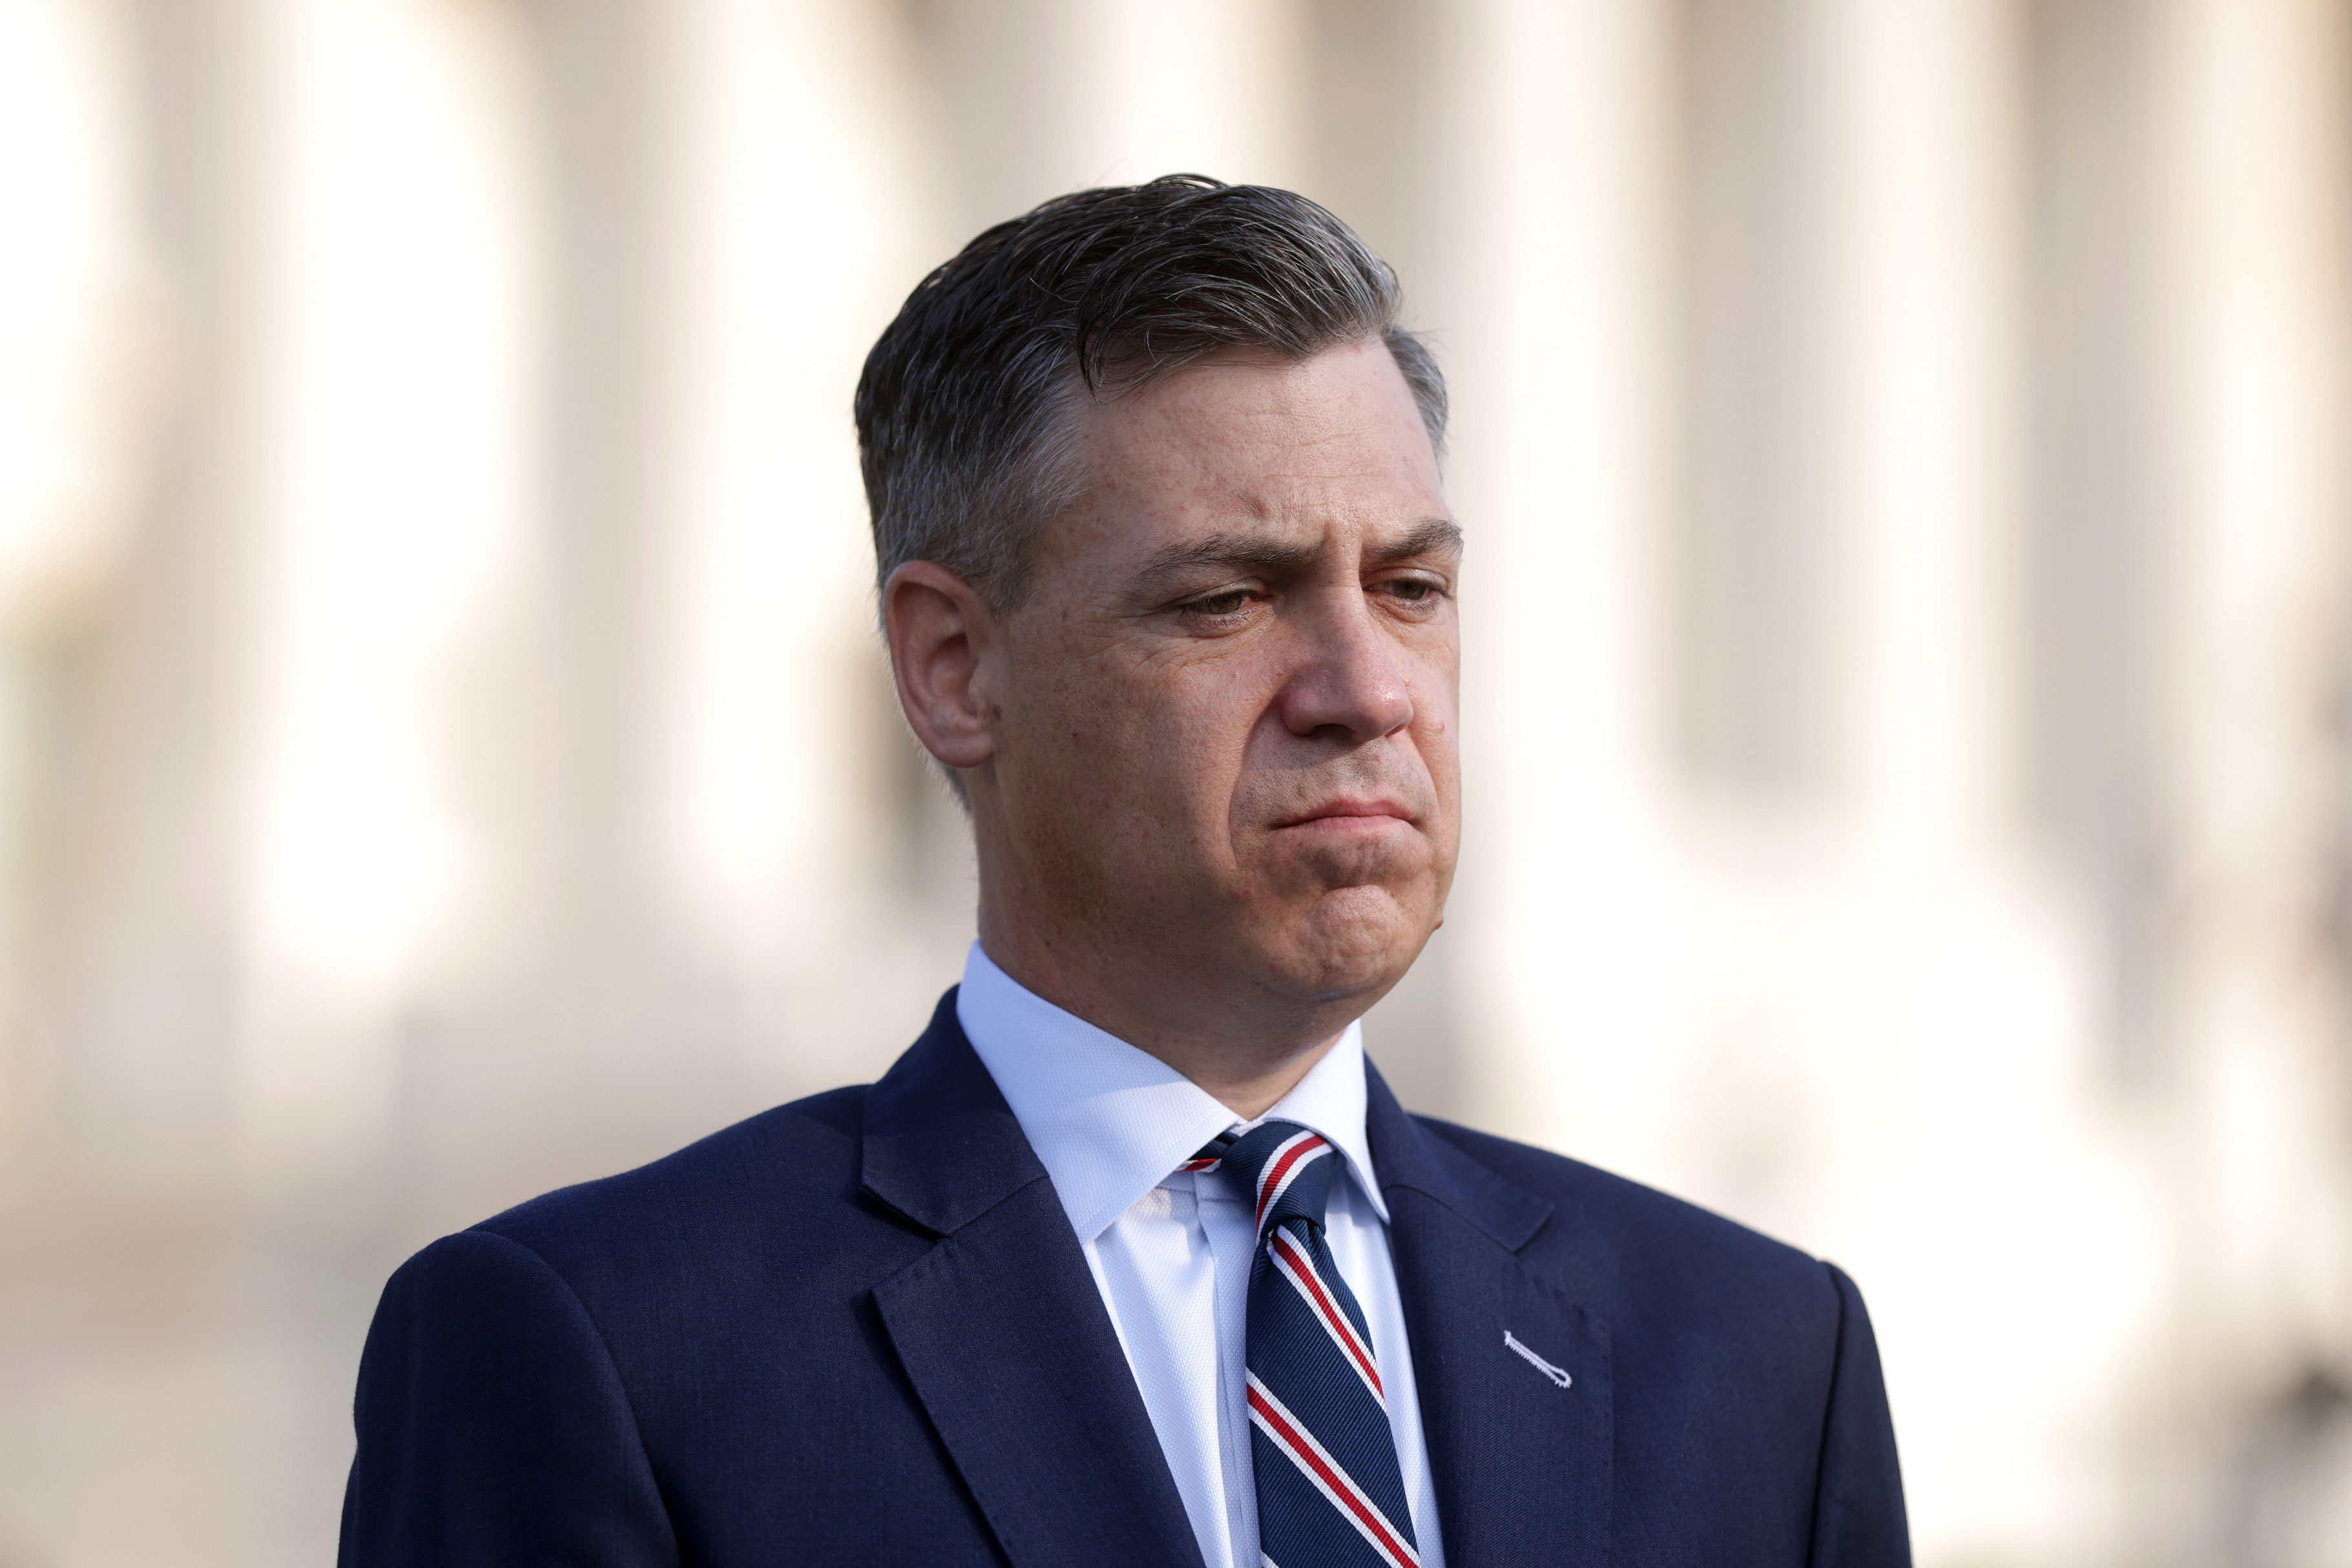 Rep. Jim Banks listens during a news conference in front of the U.S. Capitol on Tuesday, July 27.